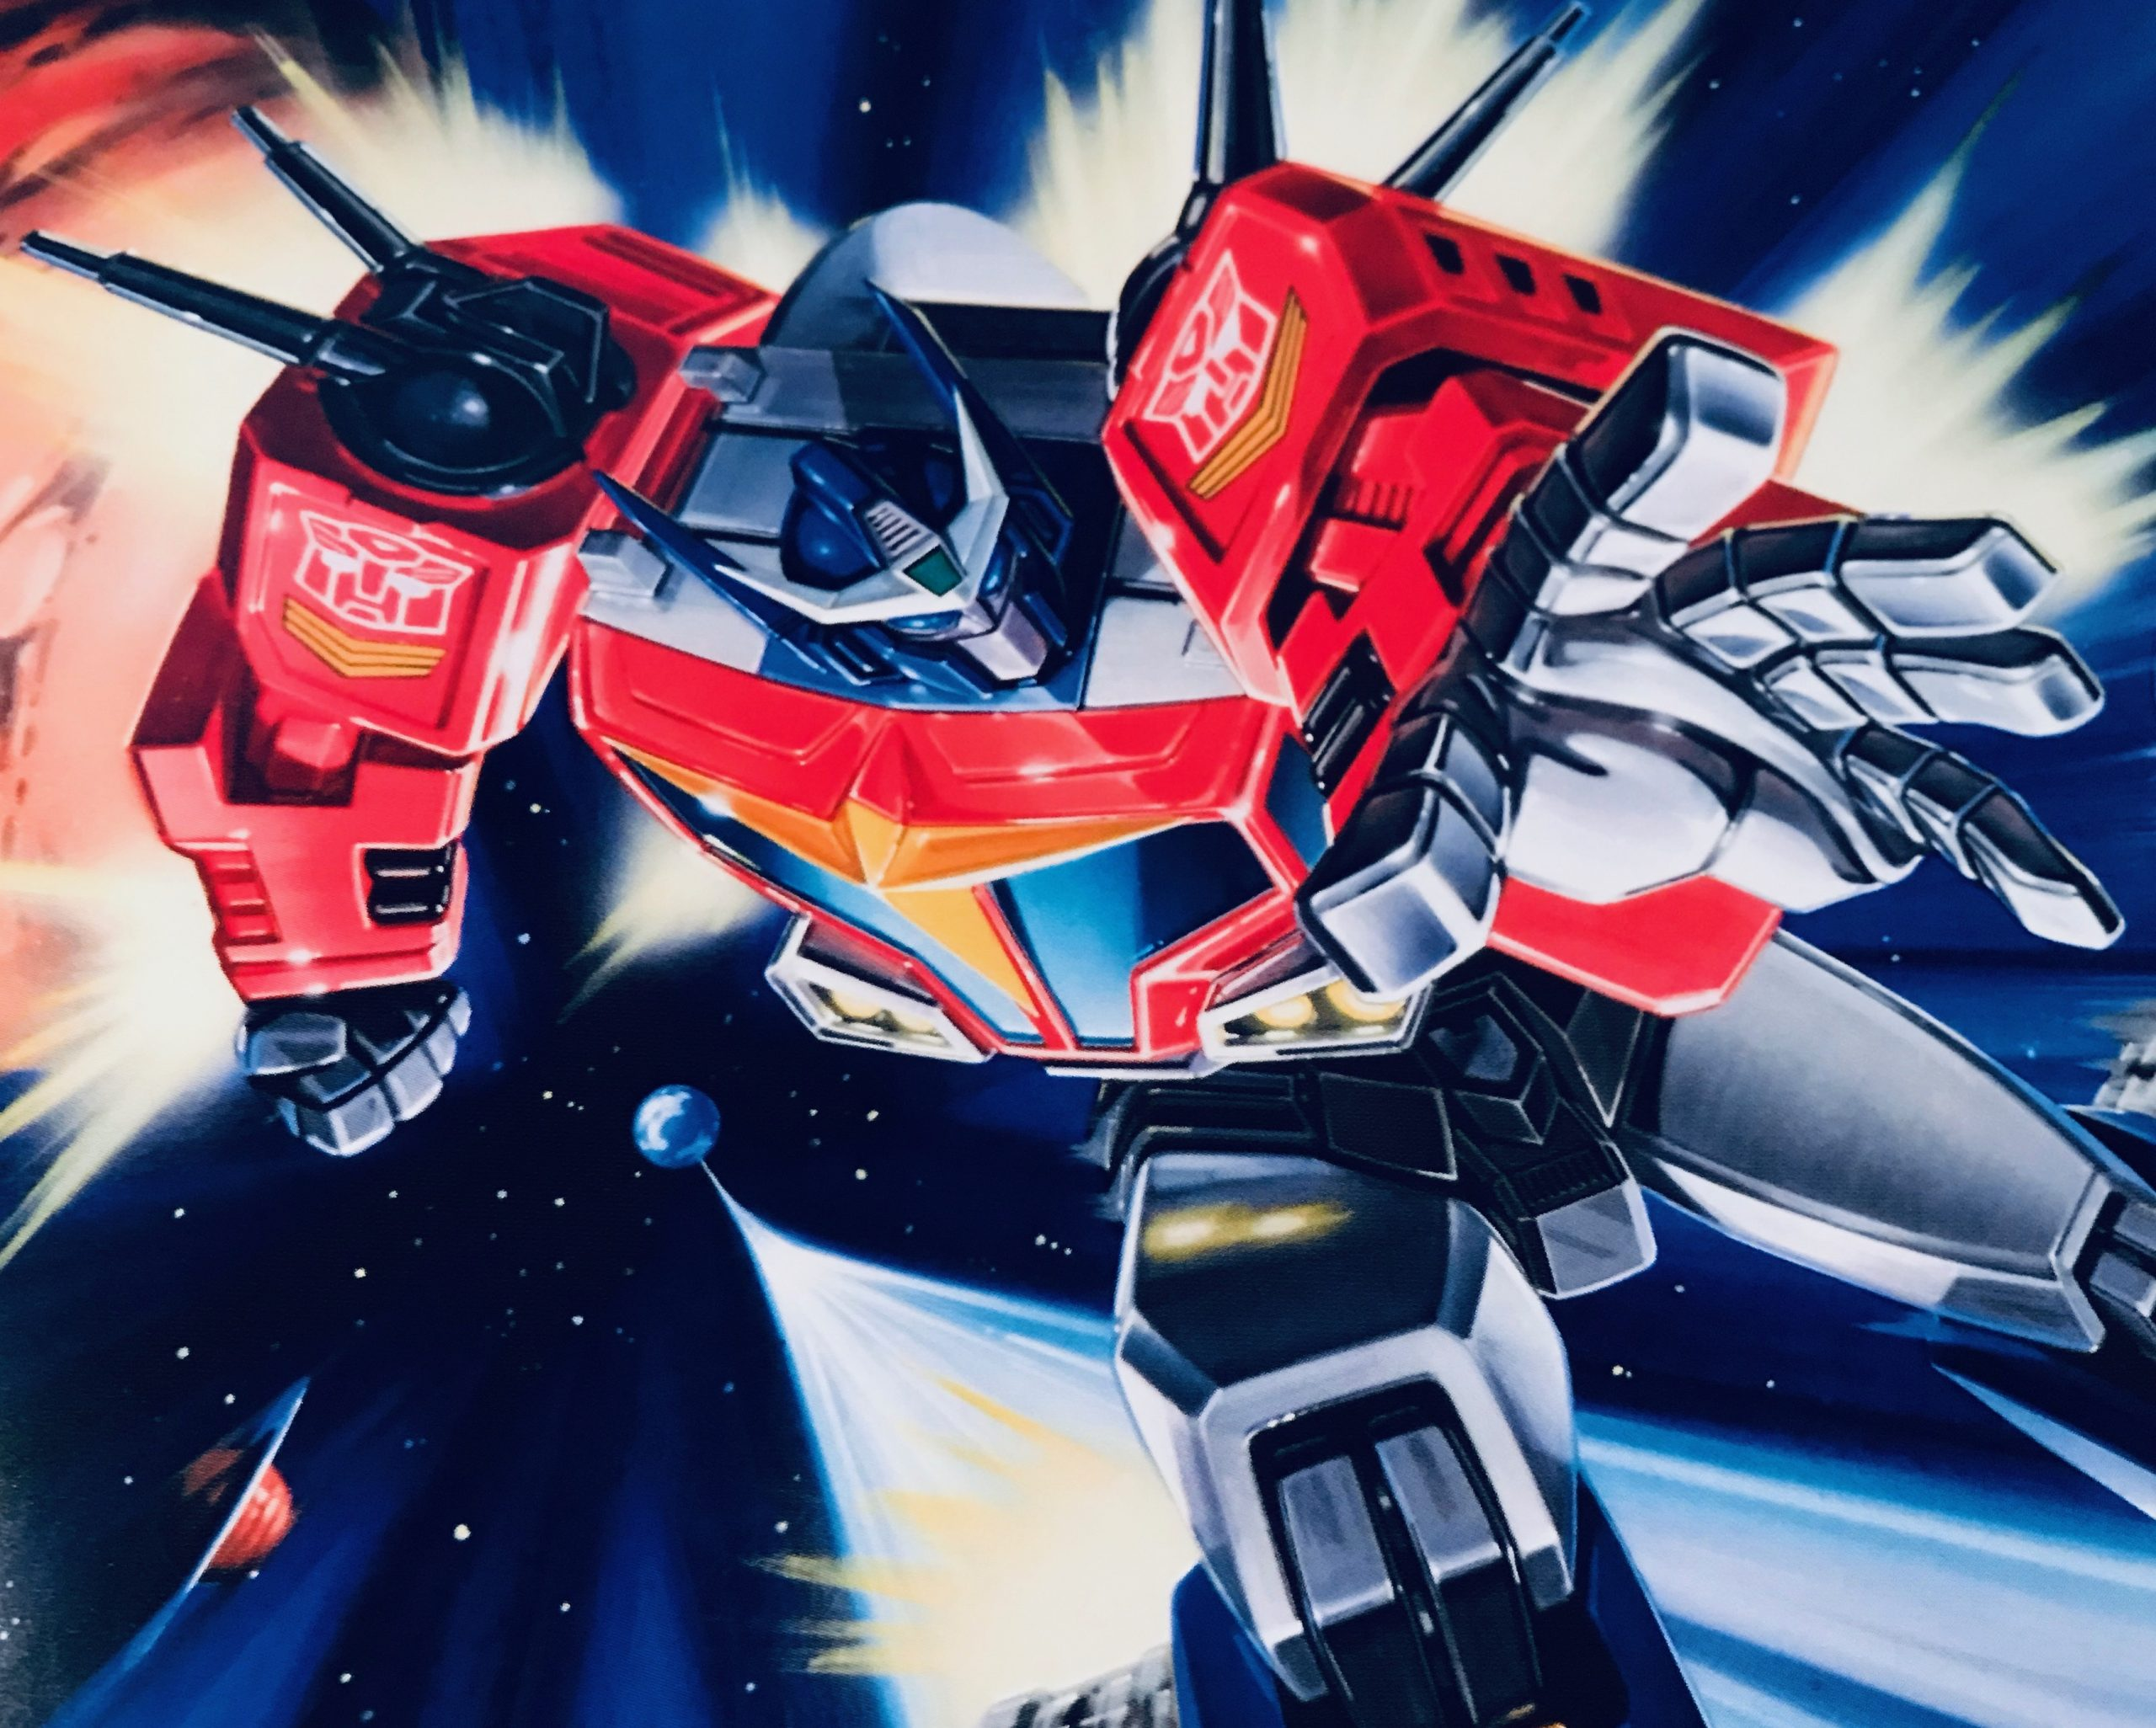 Take a quick trip through Transformers history with help from VIZ Media.